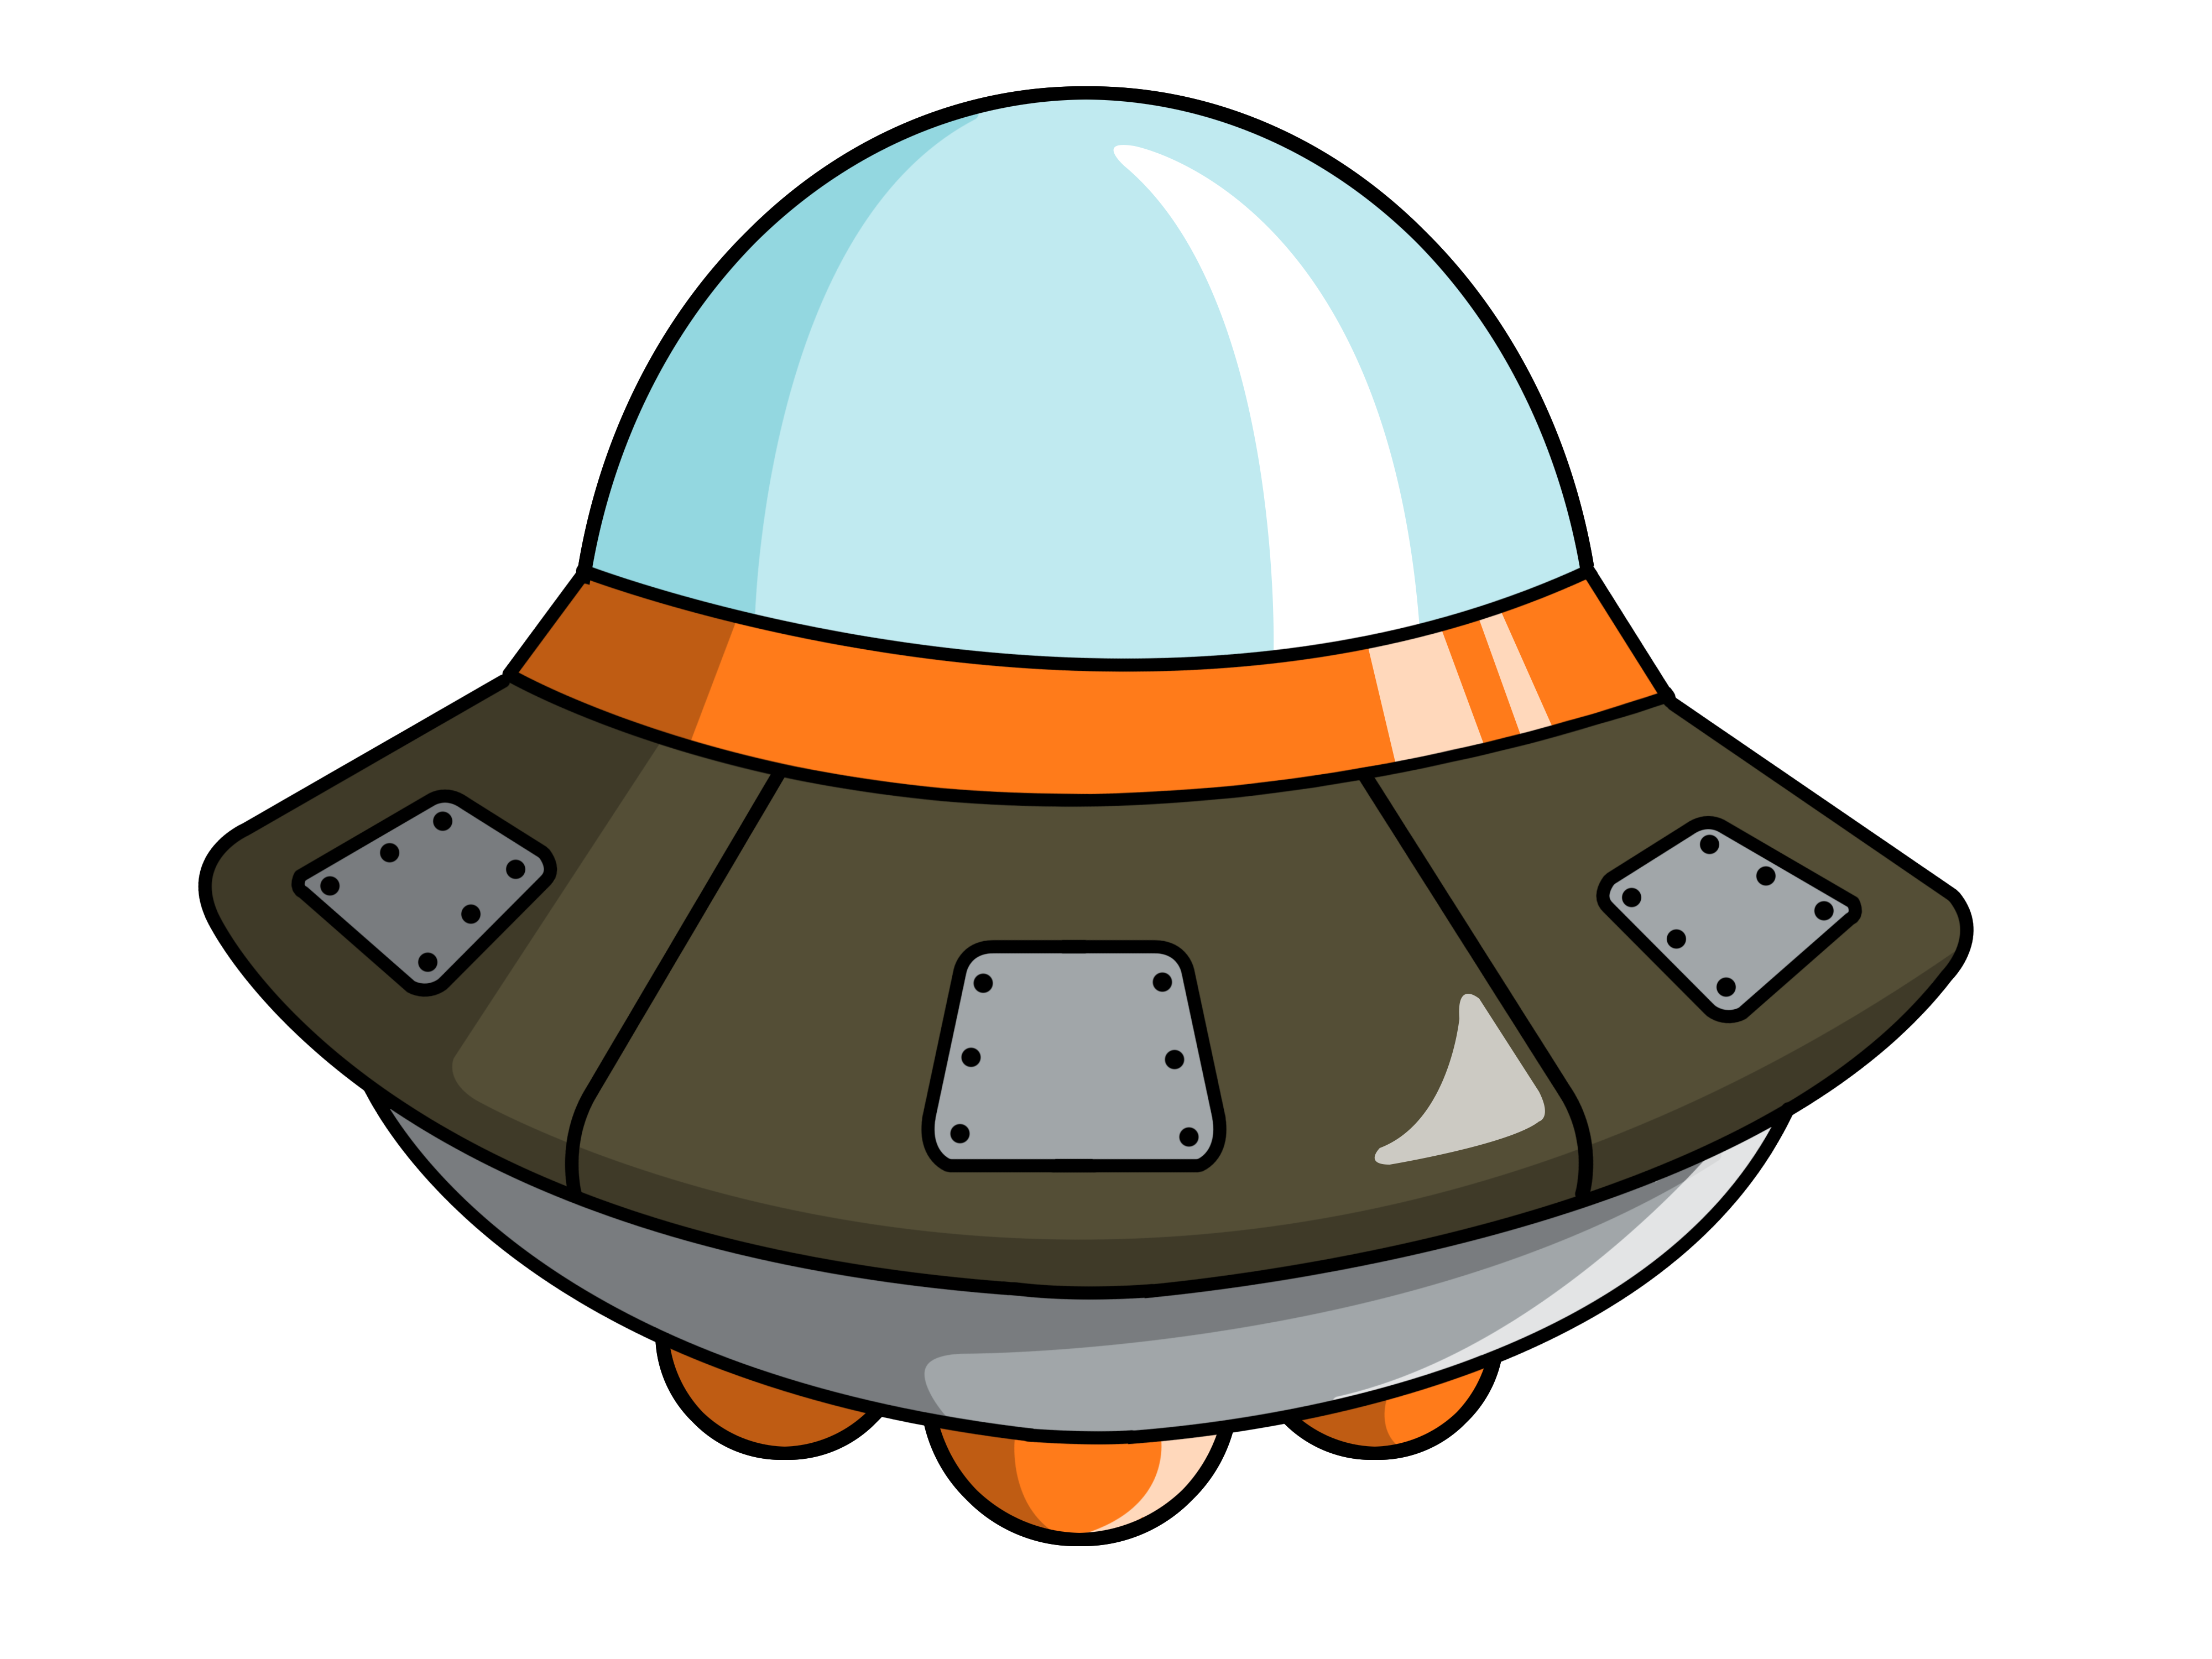 Spaceship clipart #4, Download drawings